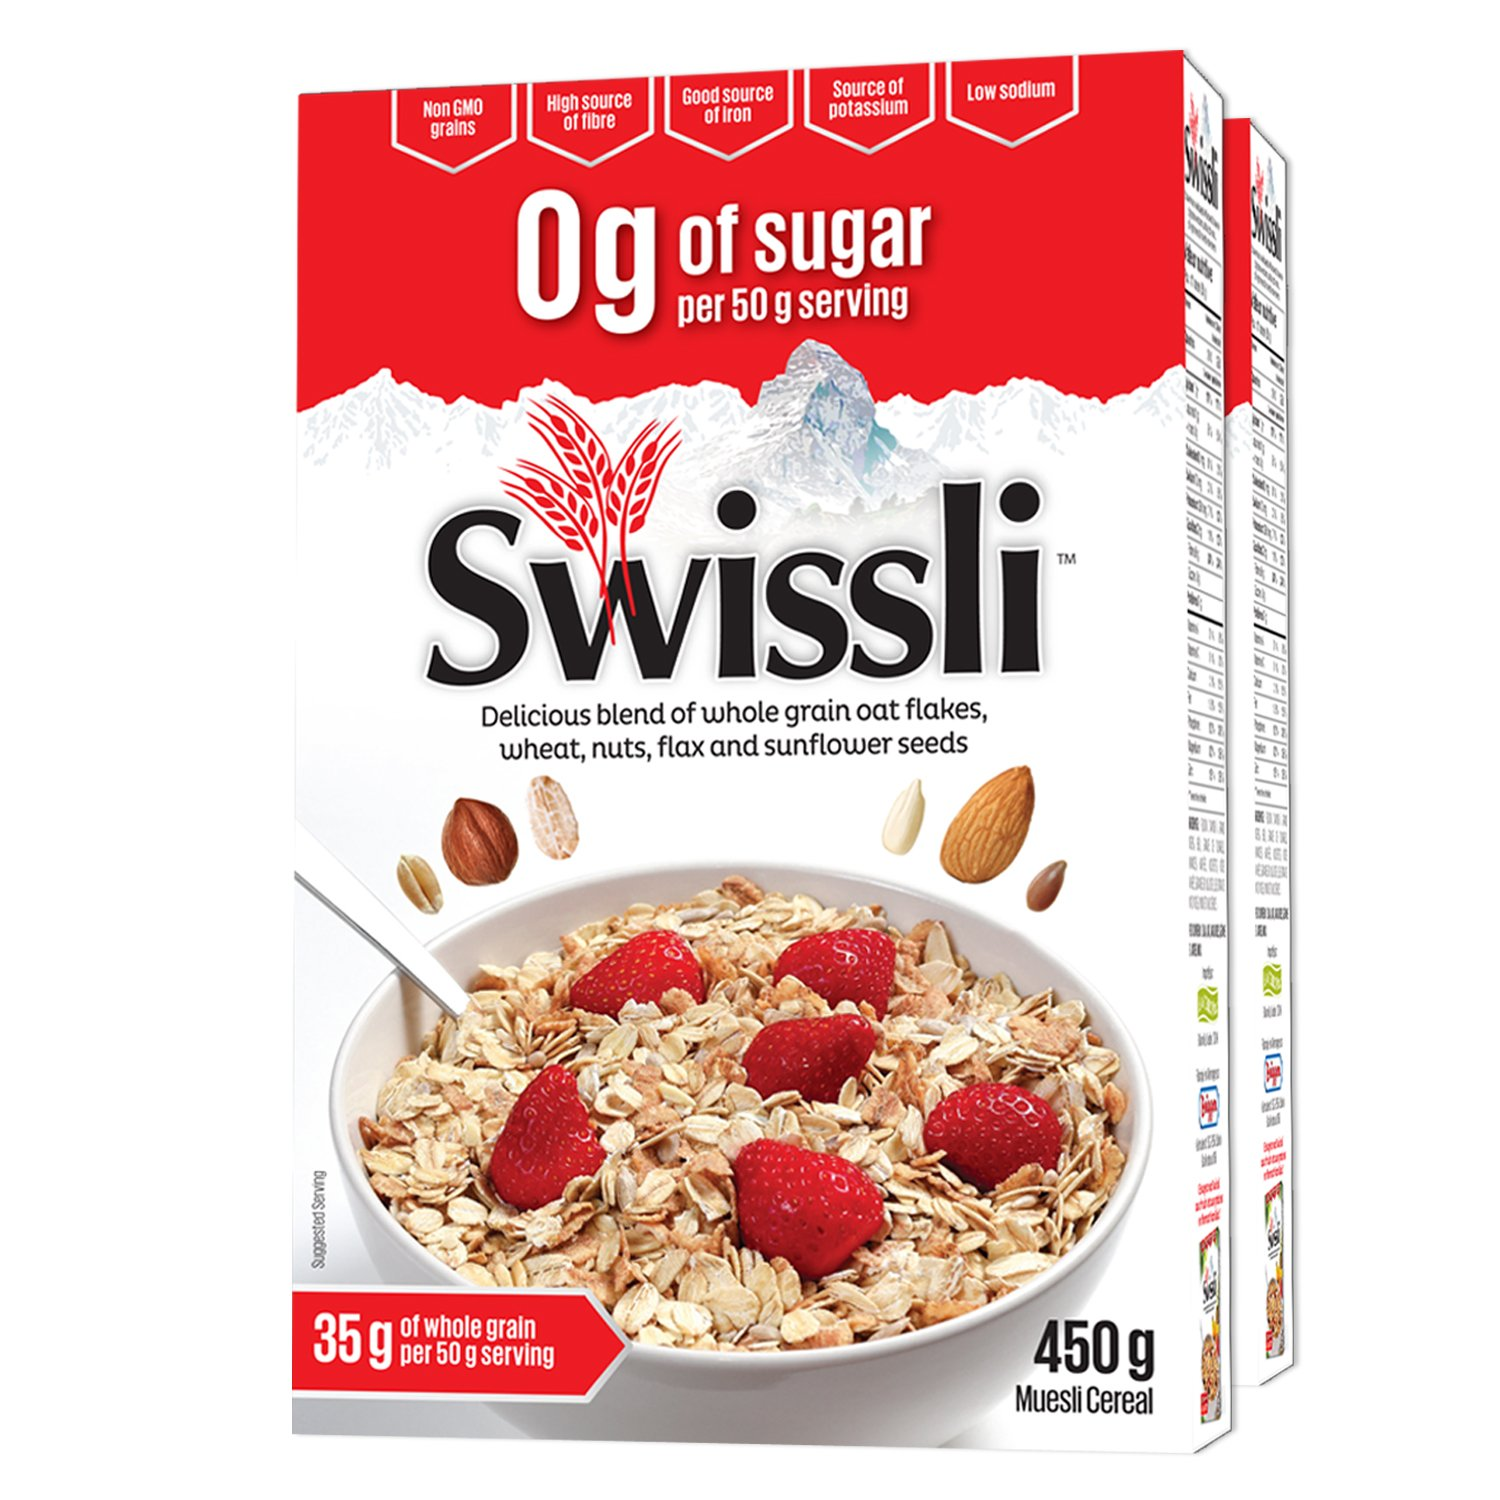 The benefits and harms of muesli: relevant information for anyone who thinks about health 73